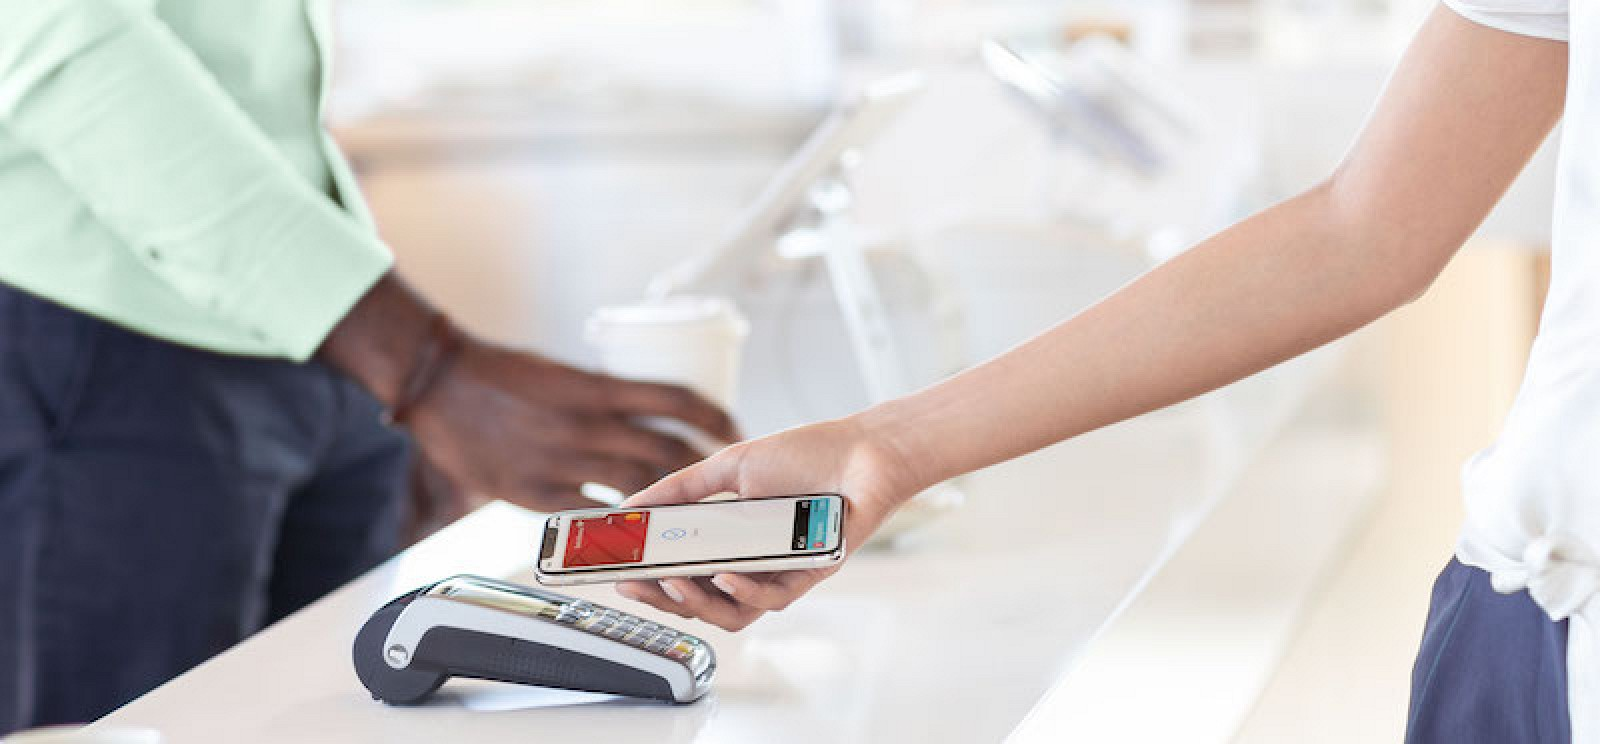 photo of EU Hearing 'Many Concerns' About Potential Anticompetitive Issues With Apple Pay image